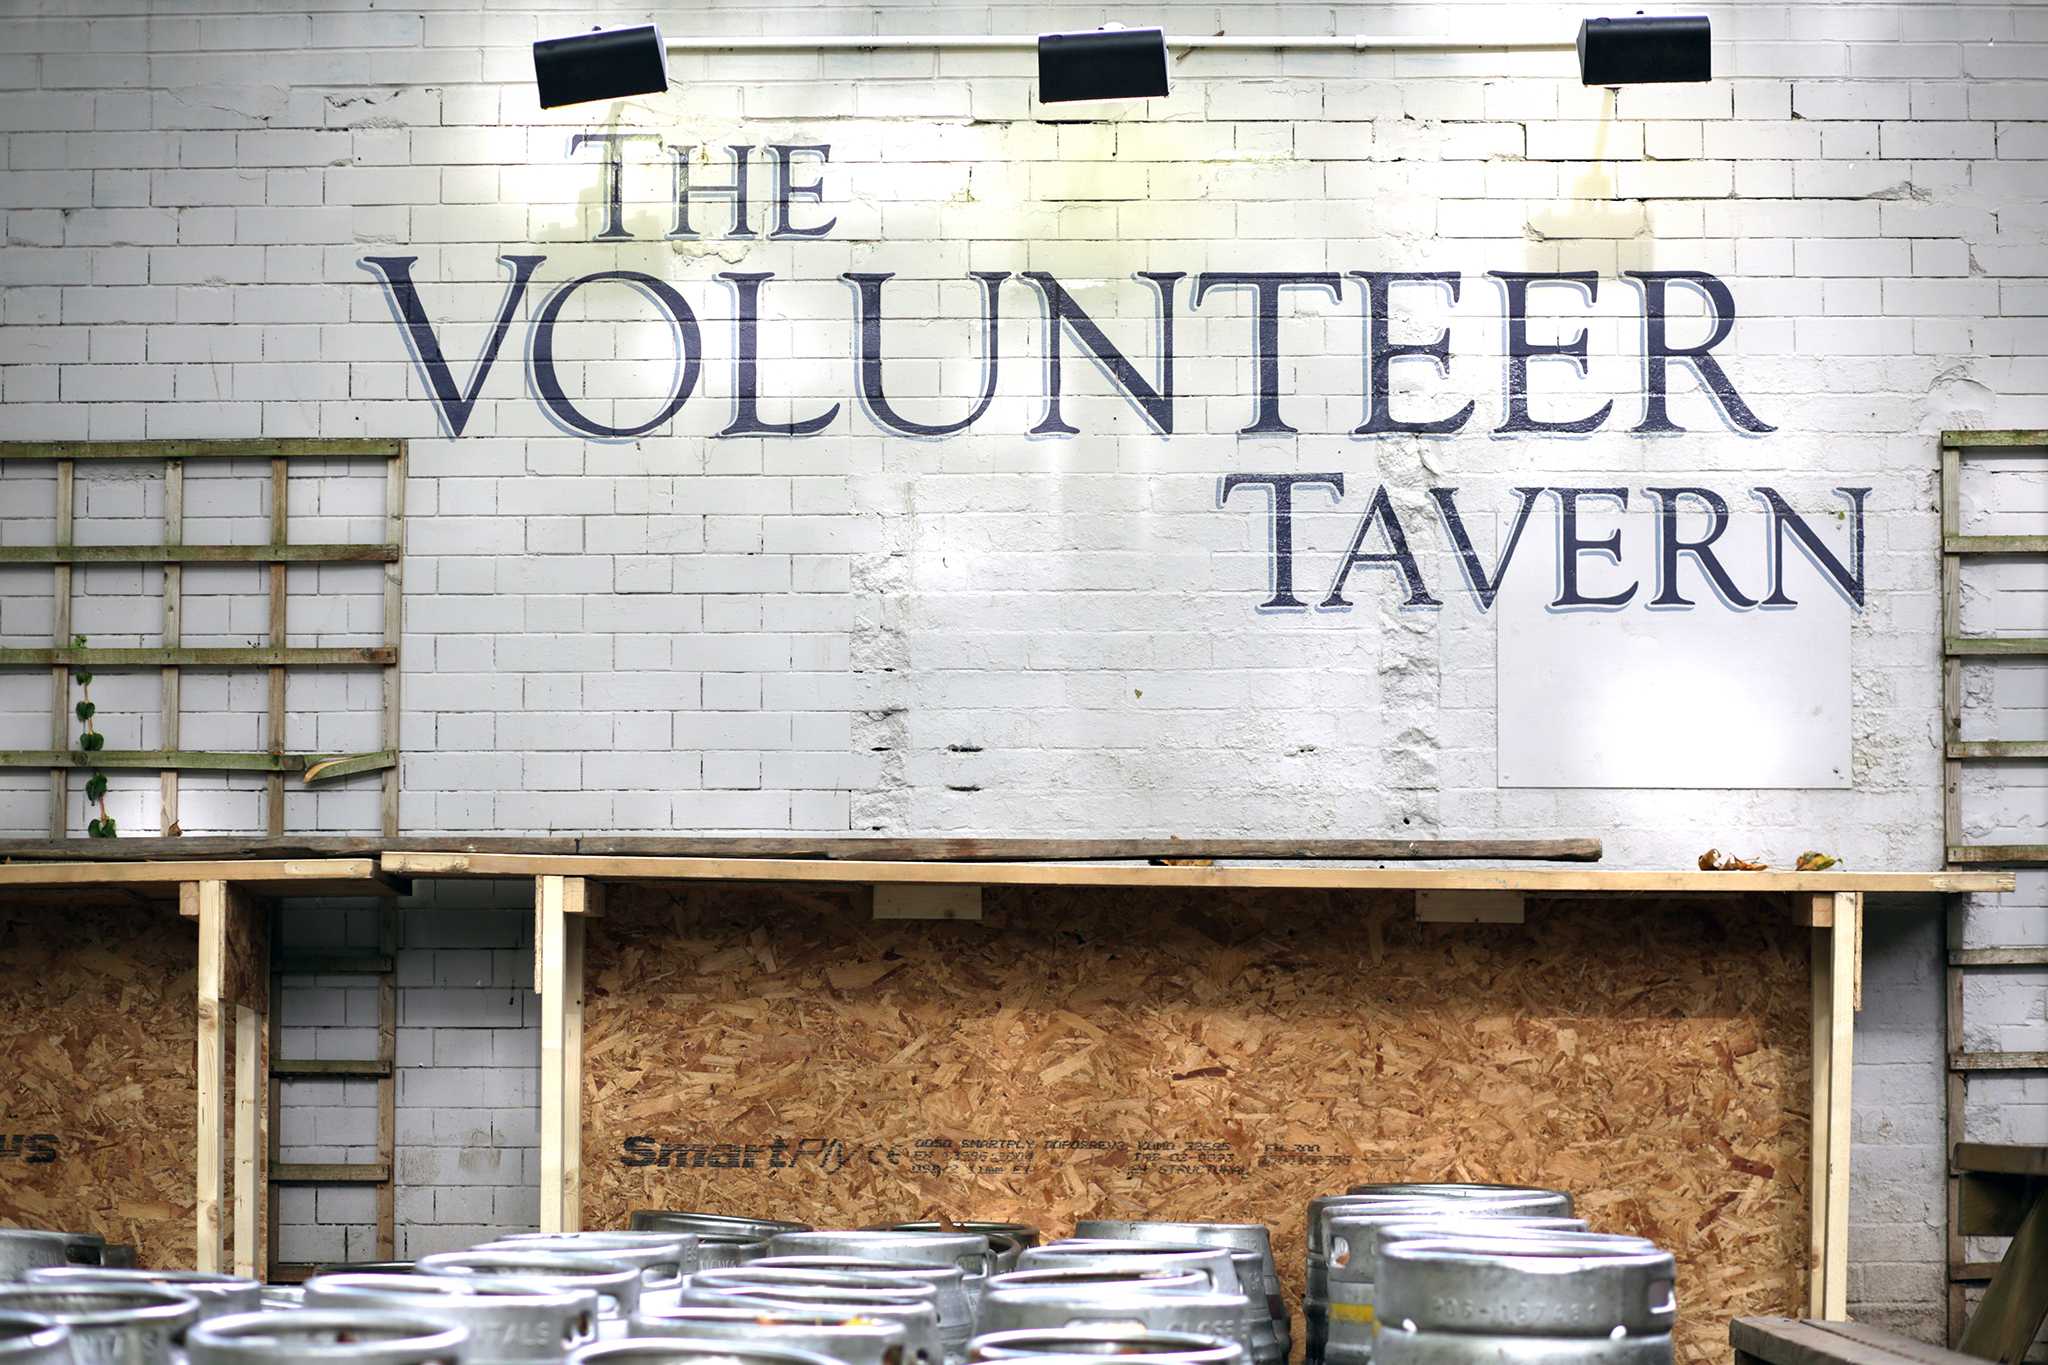 The Volunteer Tavern